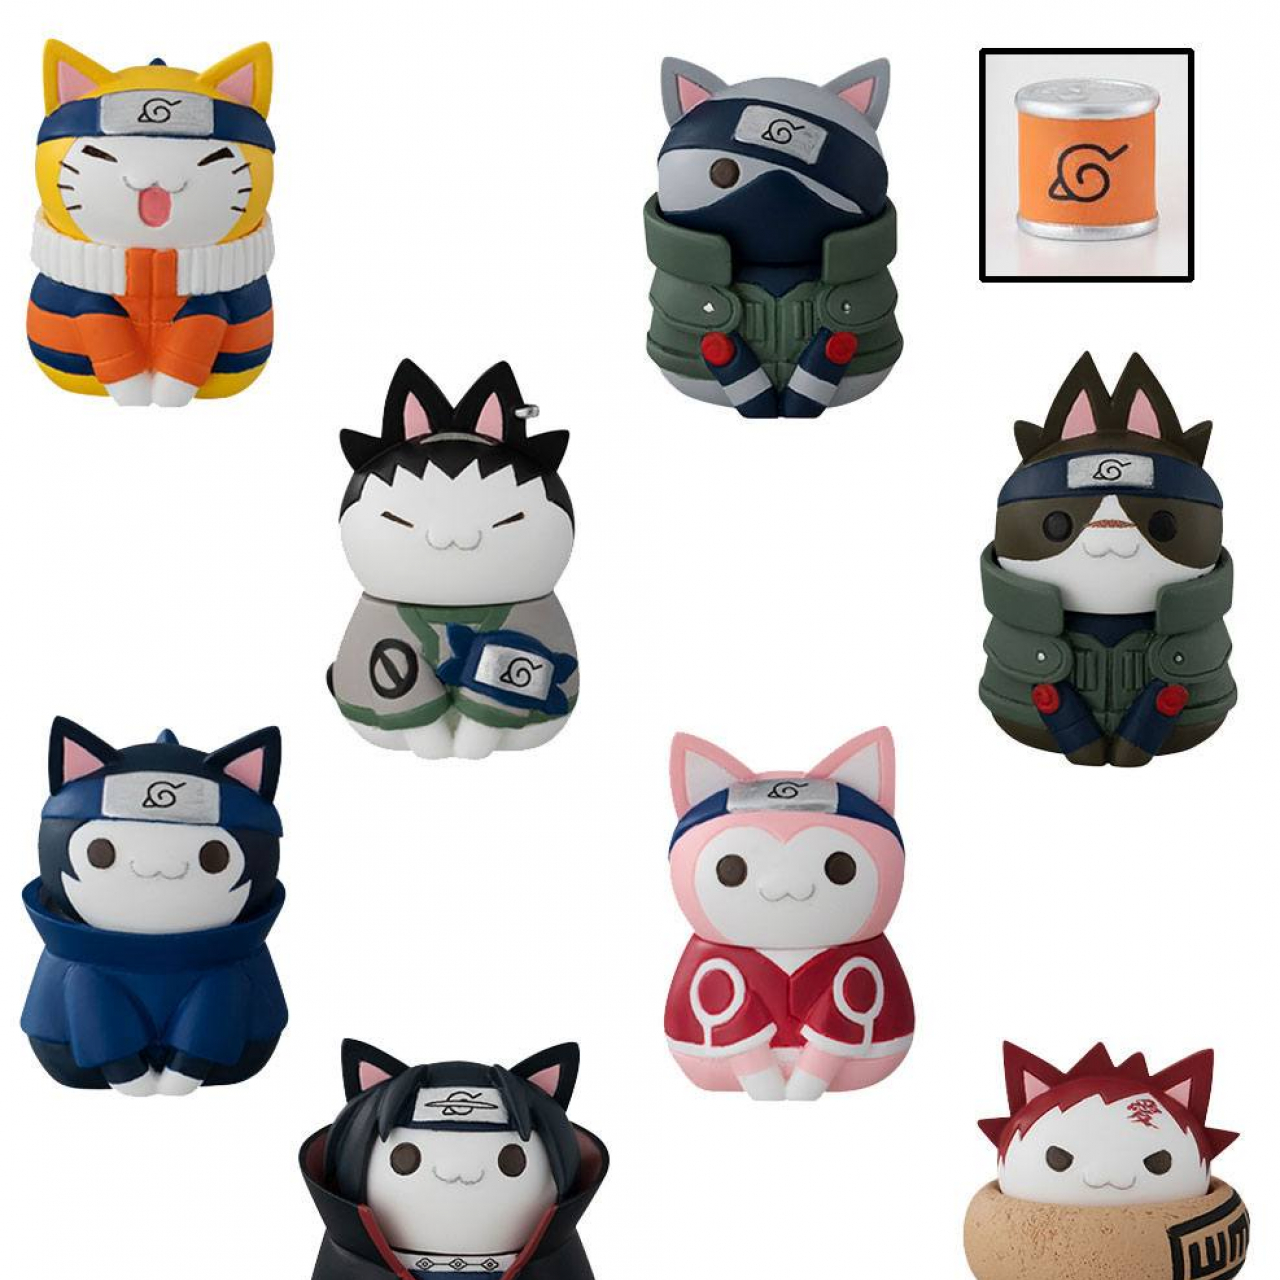 Naruto Shippuden Nyaruto! Trading Figure Cats of Konoha Village Limited Set 3 cm